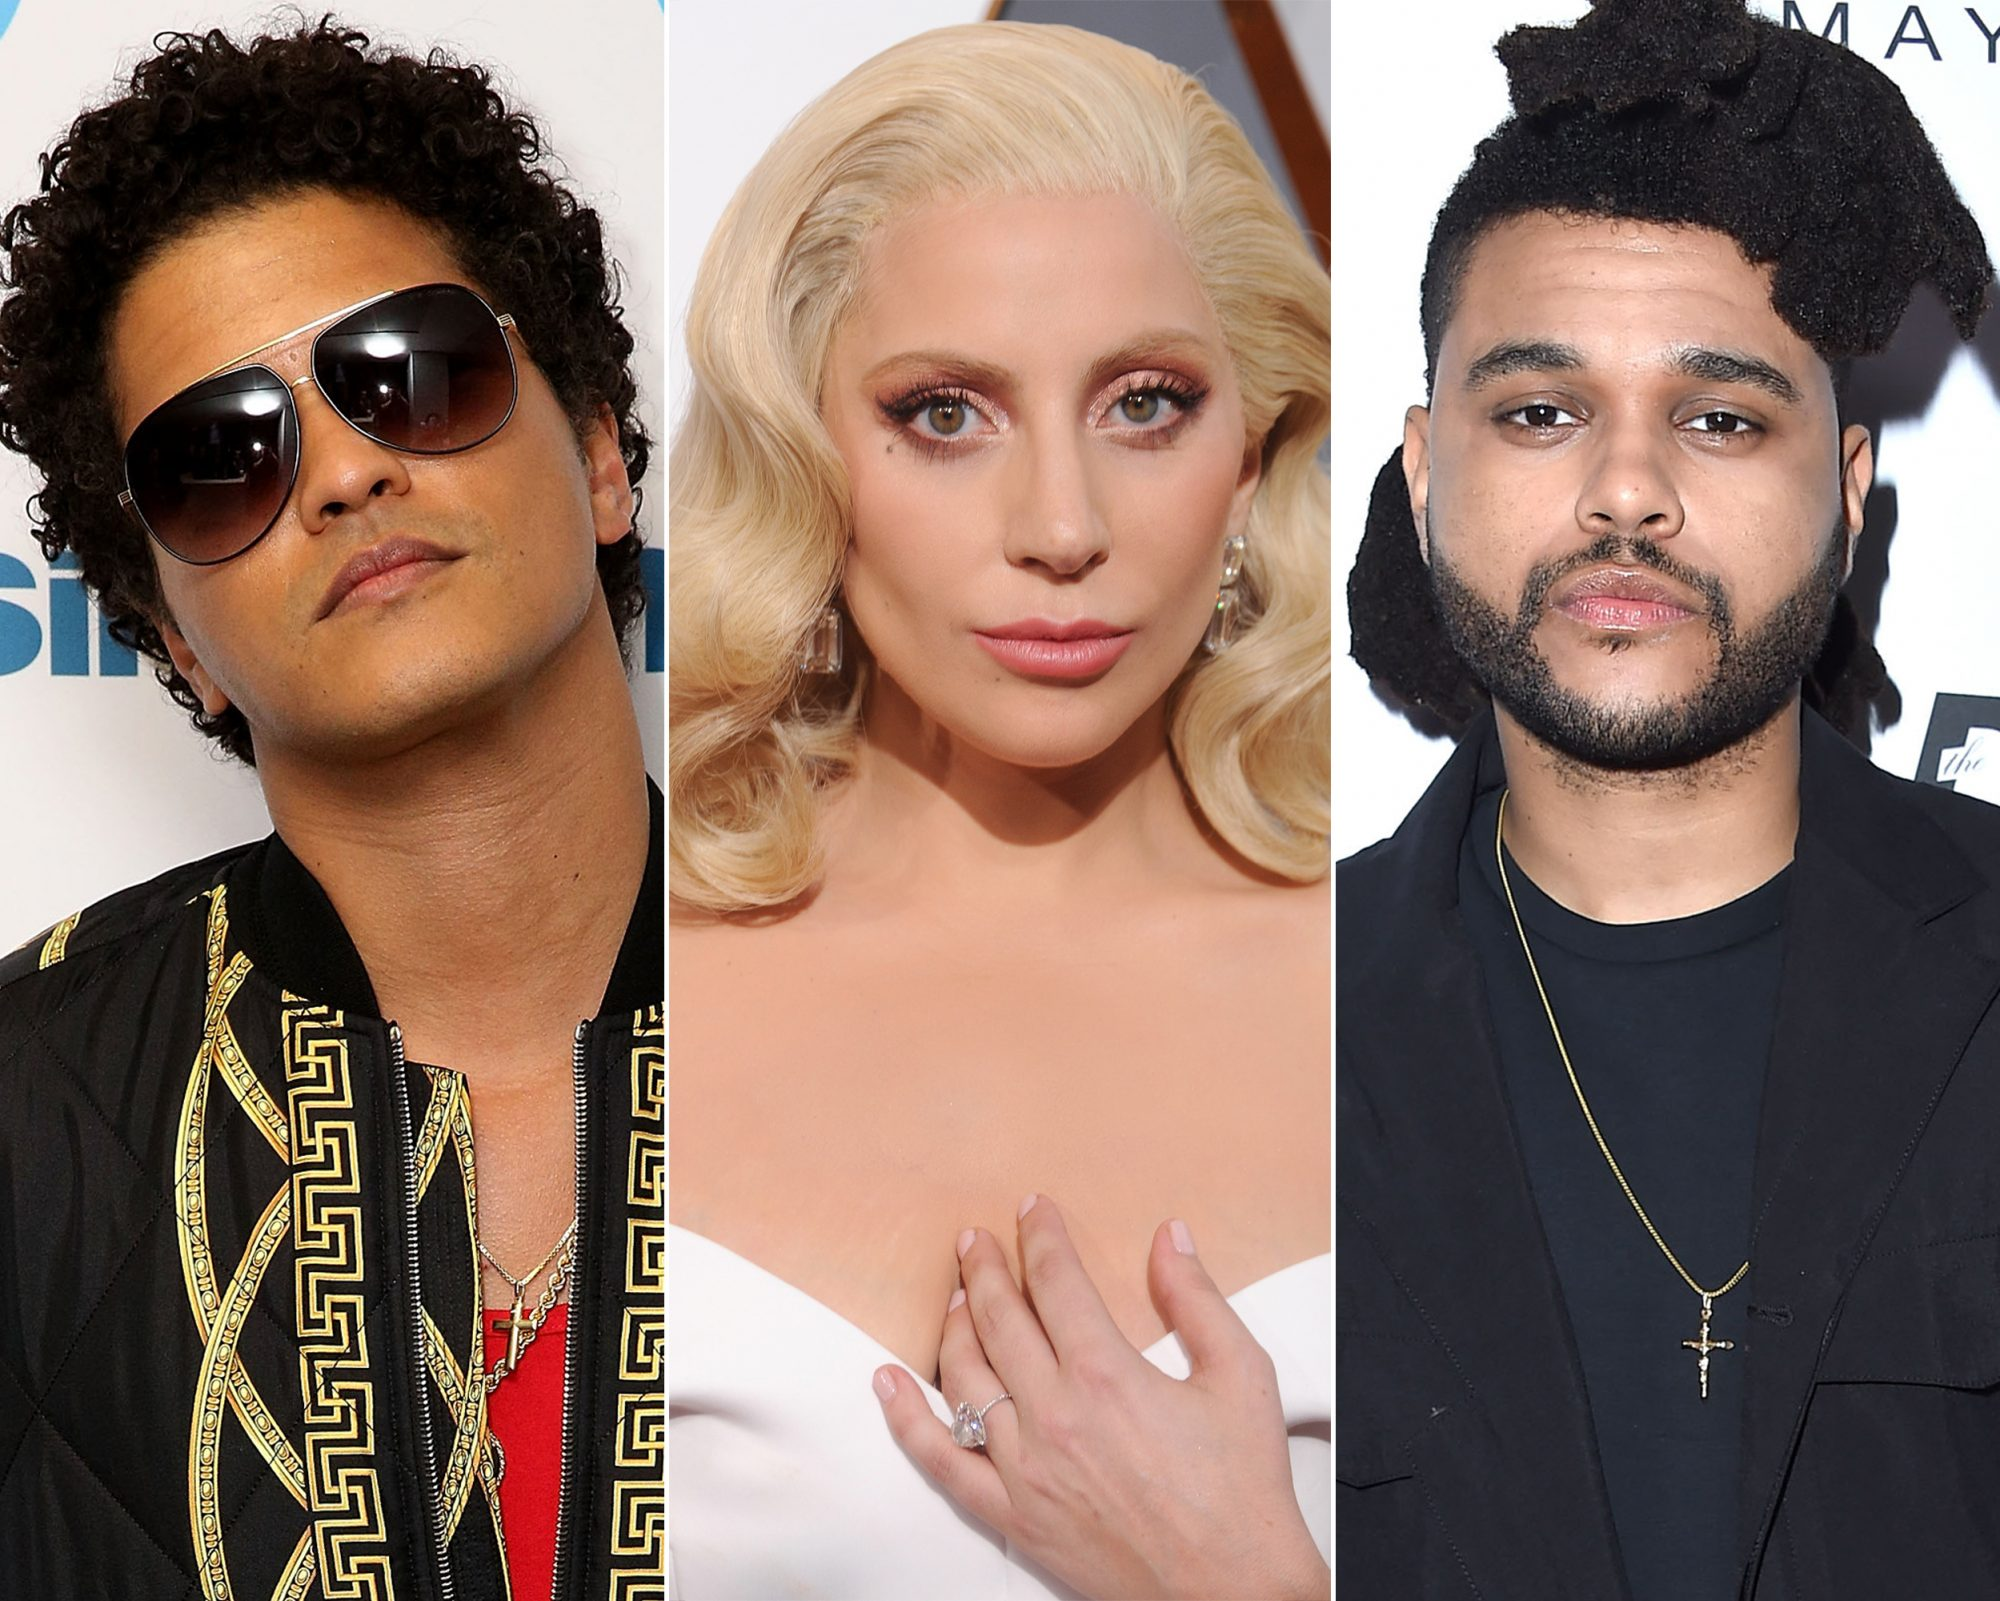 Lady Gaga, Bruno Mars, and The Weeknd Will Perform at the 2016 Victoria's Secret Fashion Show